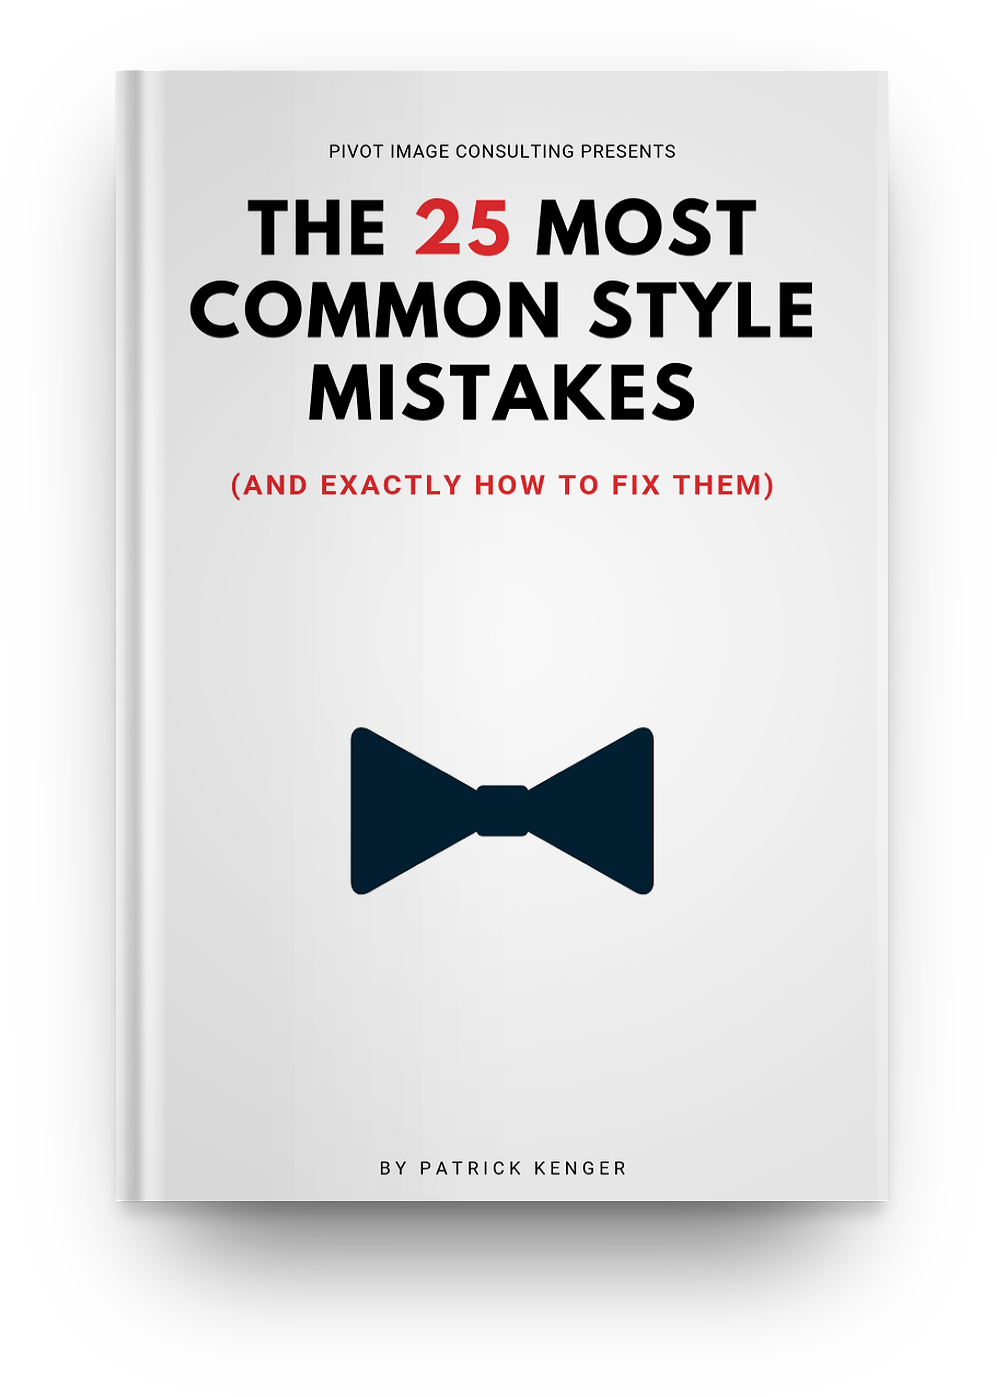 25-most-common-style-mistakes-book.png